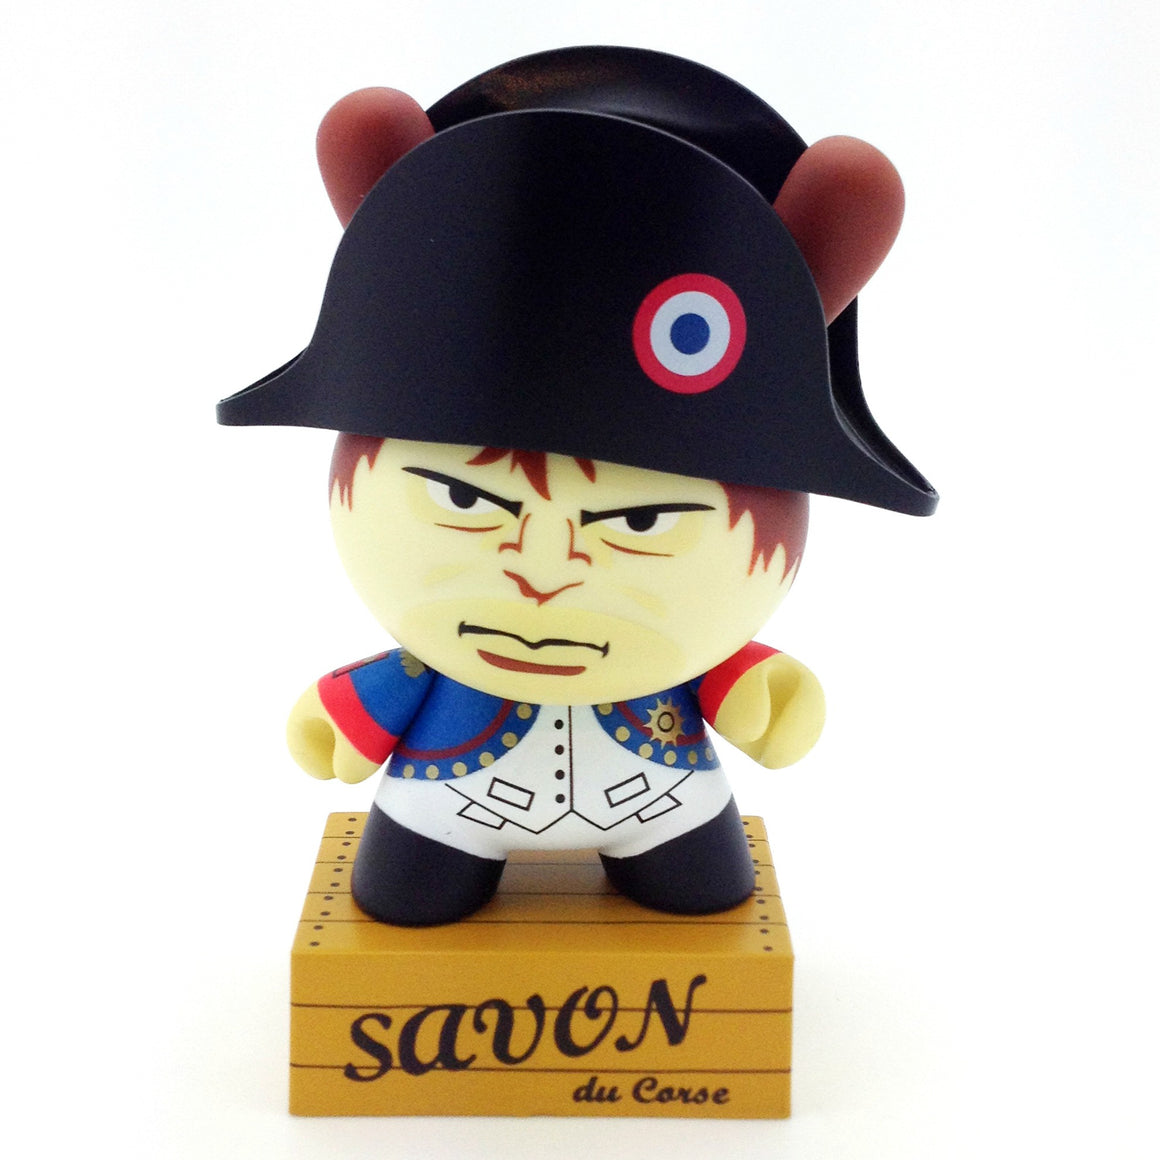 Art of War Dunny Series - Napoleon (Kozik) - Mindzai